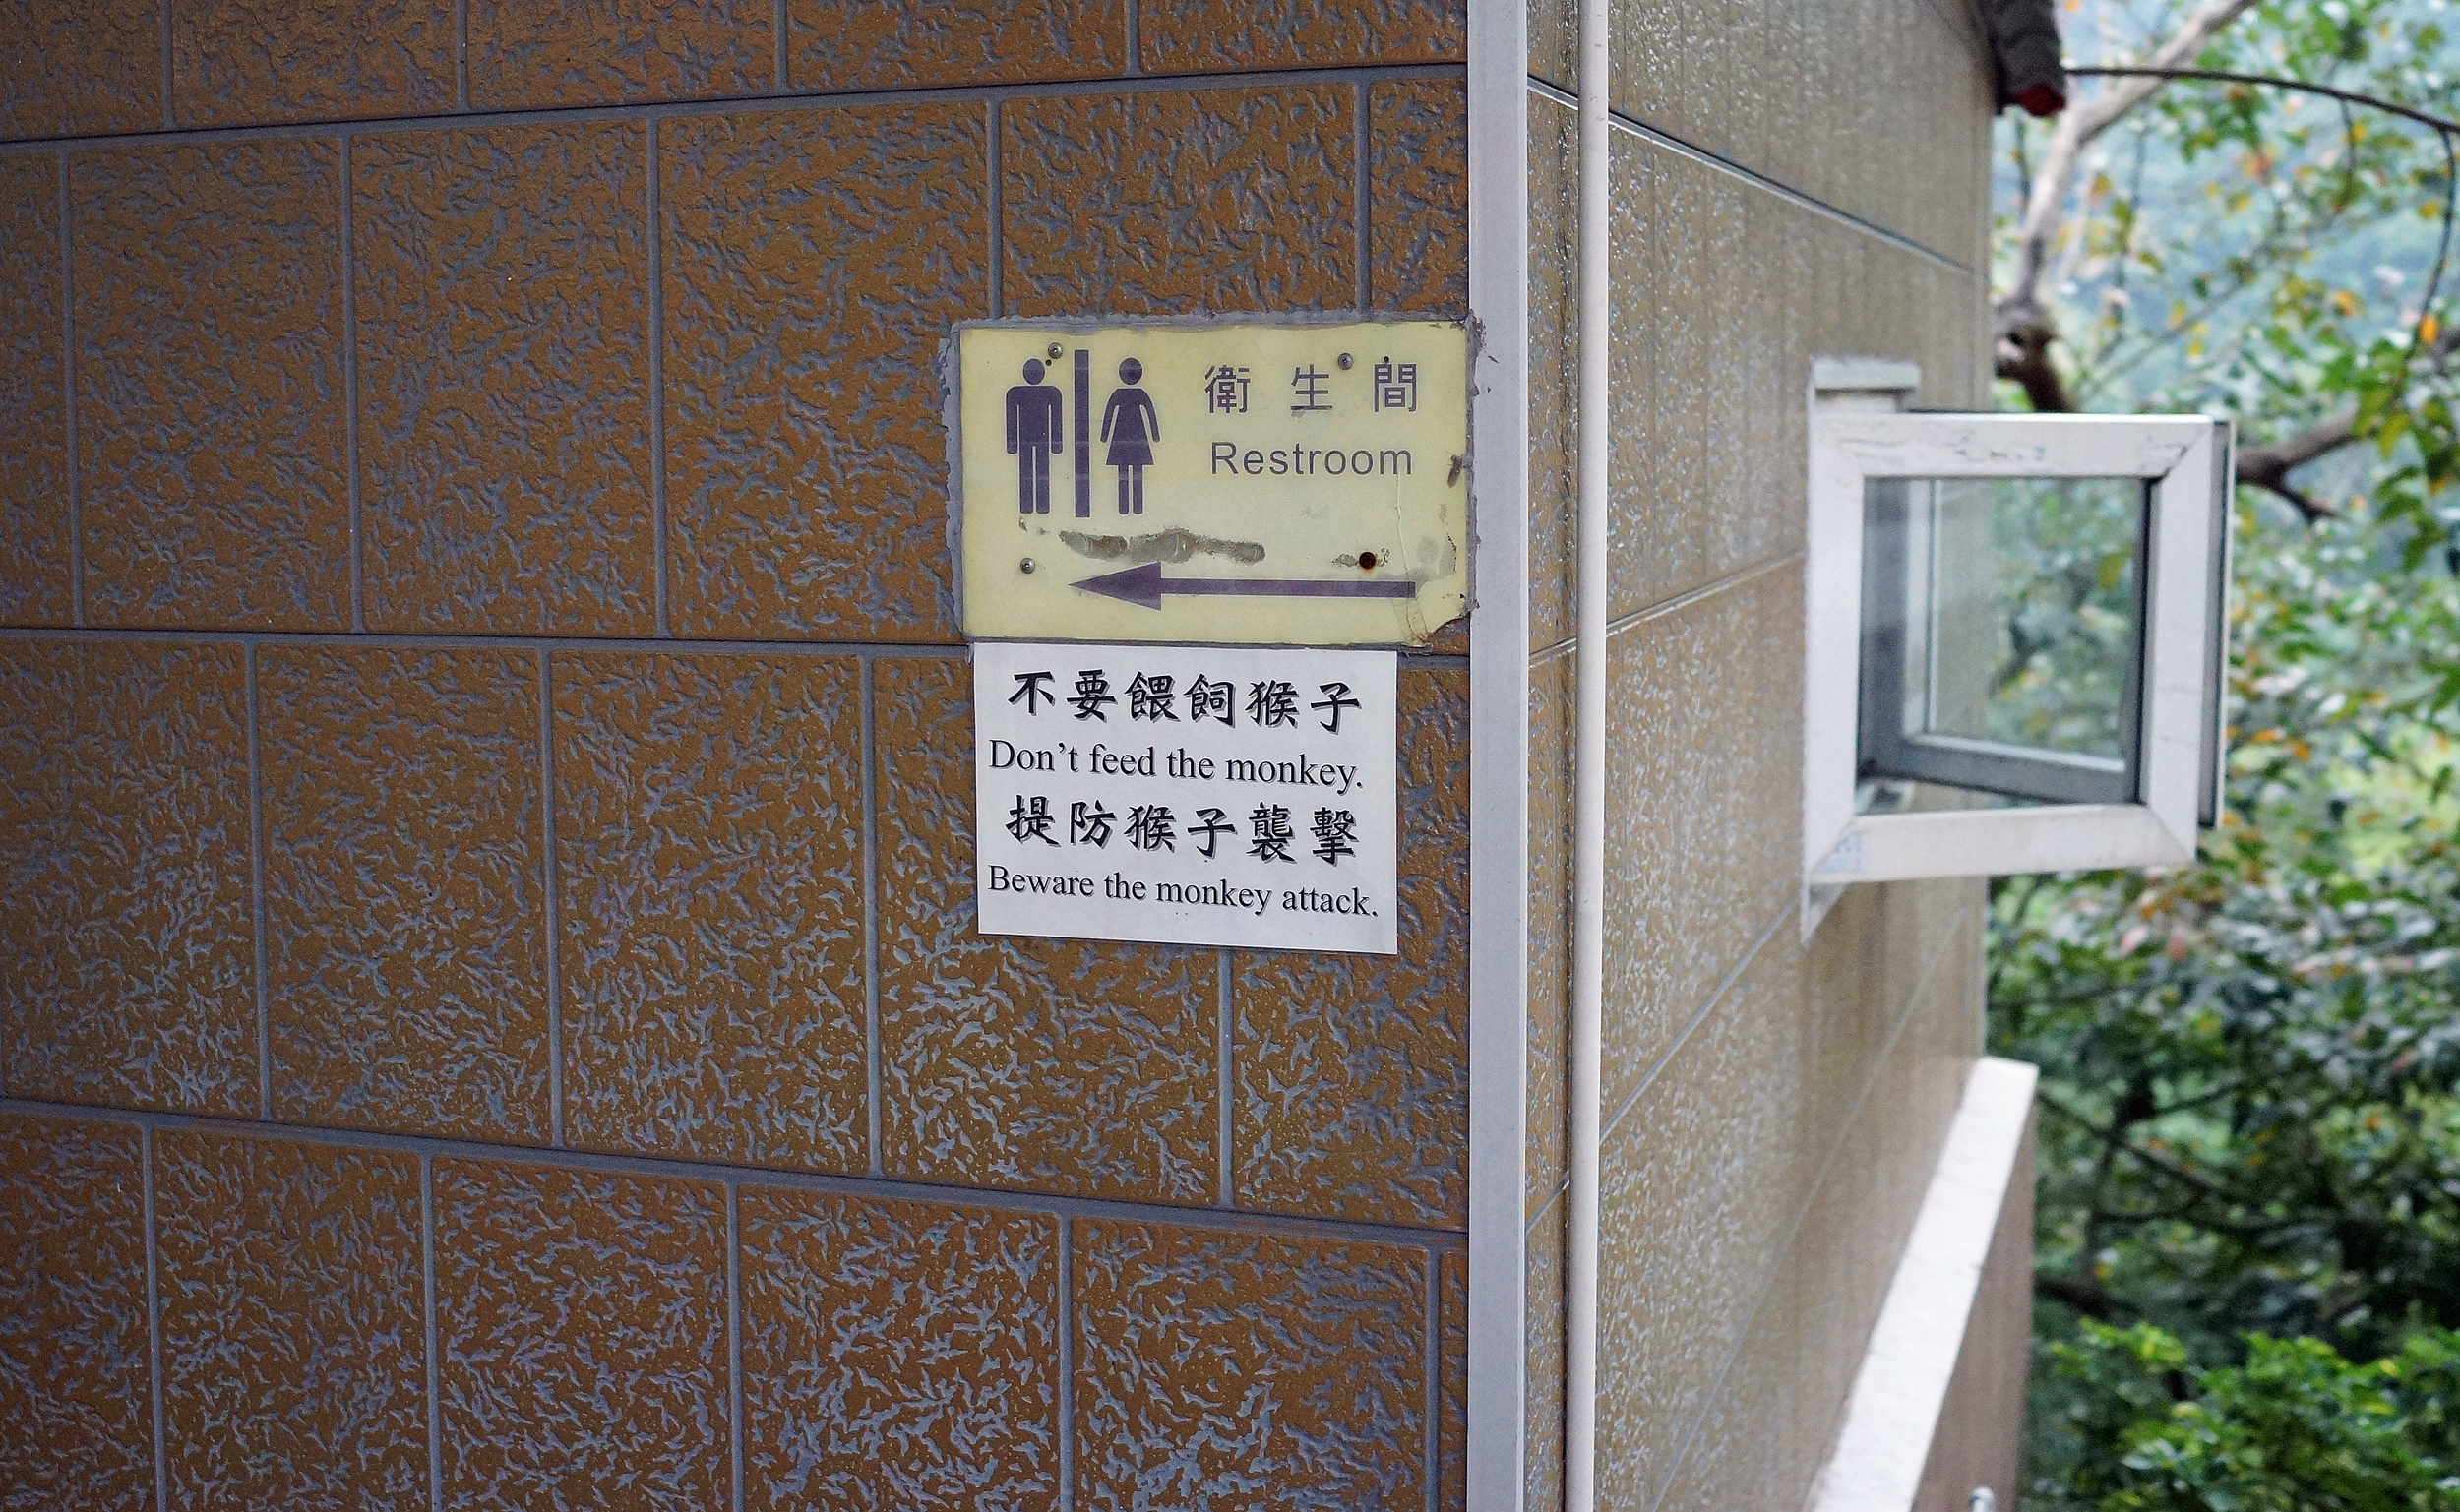 Still one of the funniest signs you can see in Hong Kong at the bathrooms at the 10,000 Buddha Monastery in Shatin! as if going to the bathroom in a jungle setting is not stressful enough!